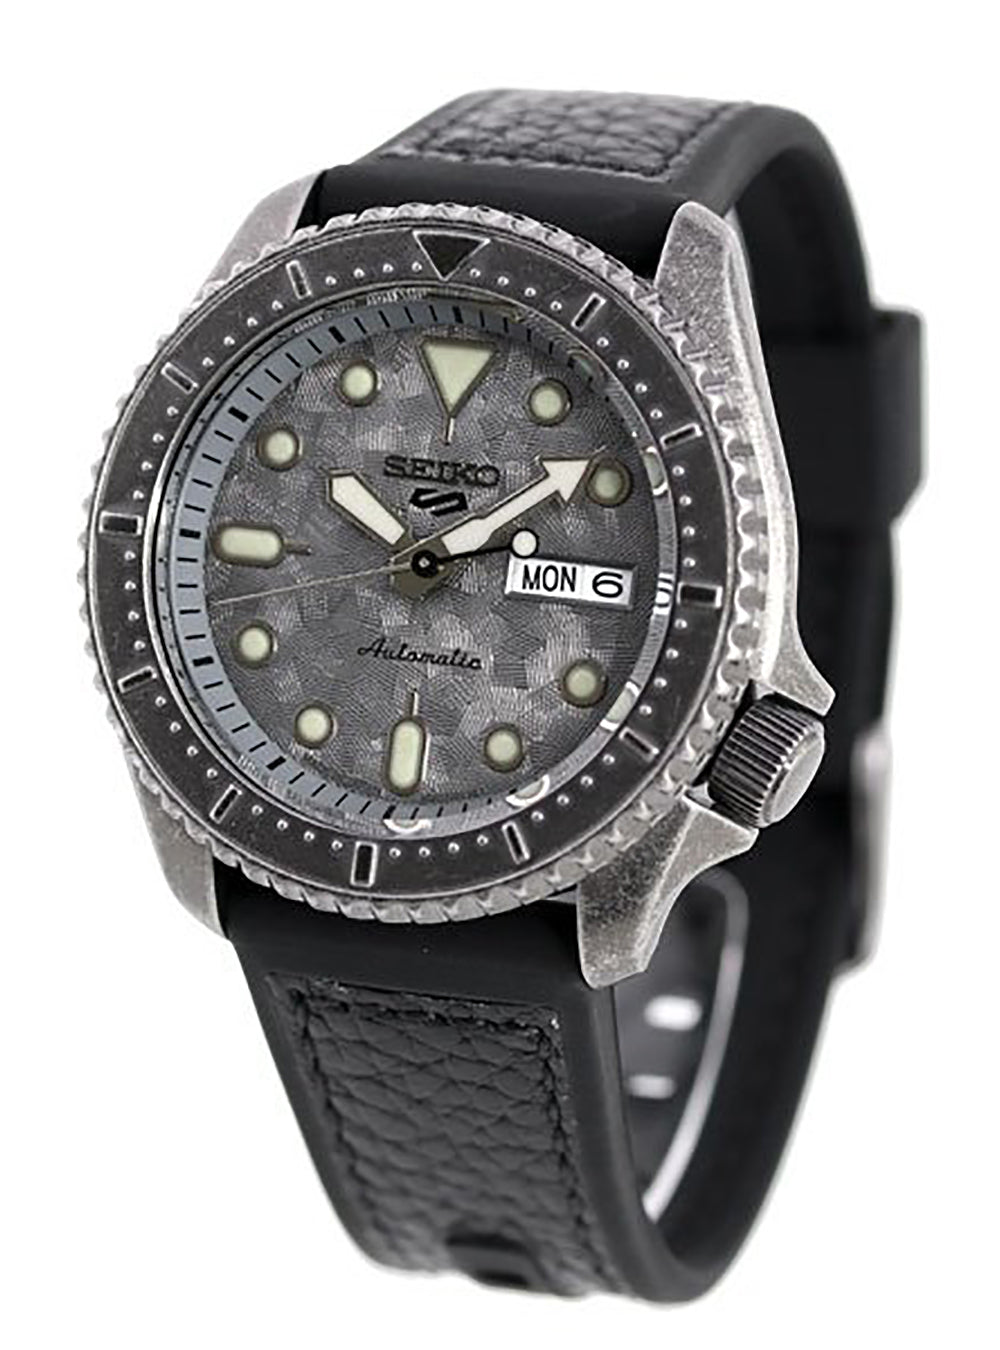 SEIKO 5 SPORTS SPECIALIST STYLE SBSA071 MADE IN JAPAN JDM